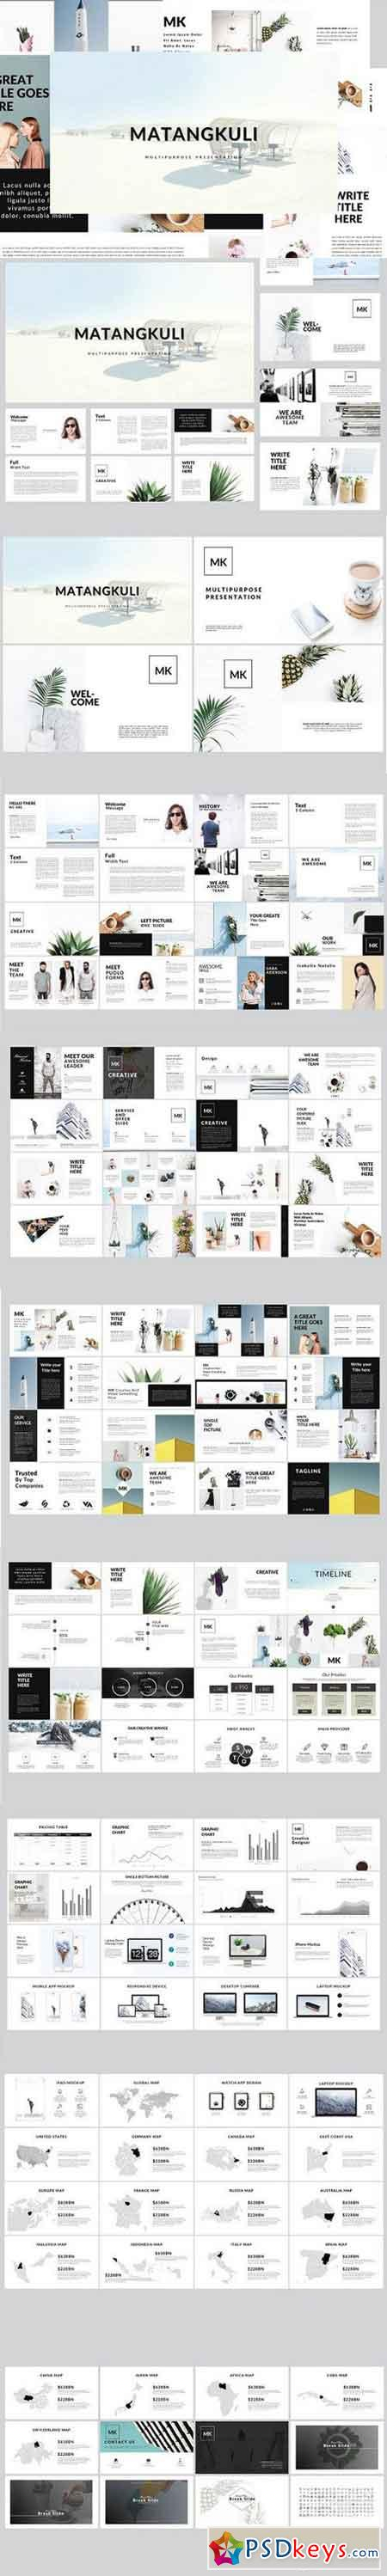 powerpoint  u00bb page 47  u00bb free download photoshop vector